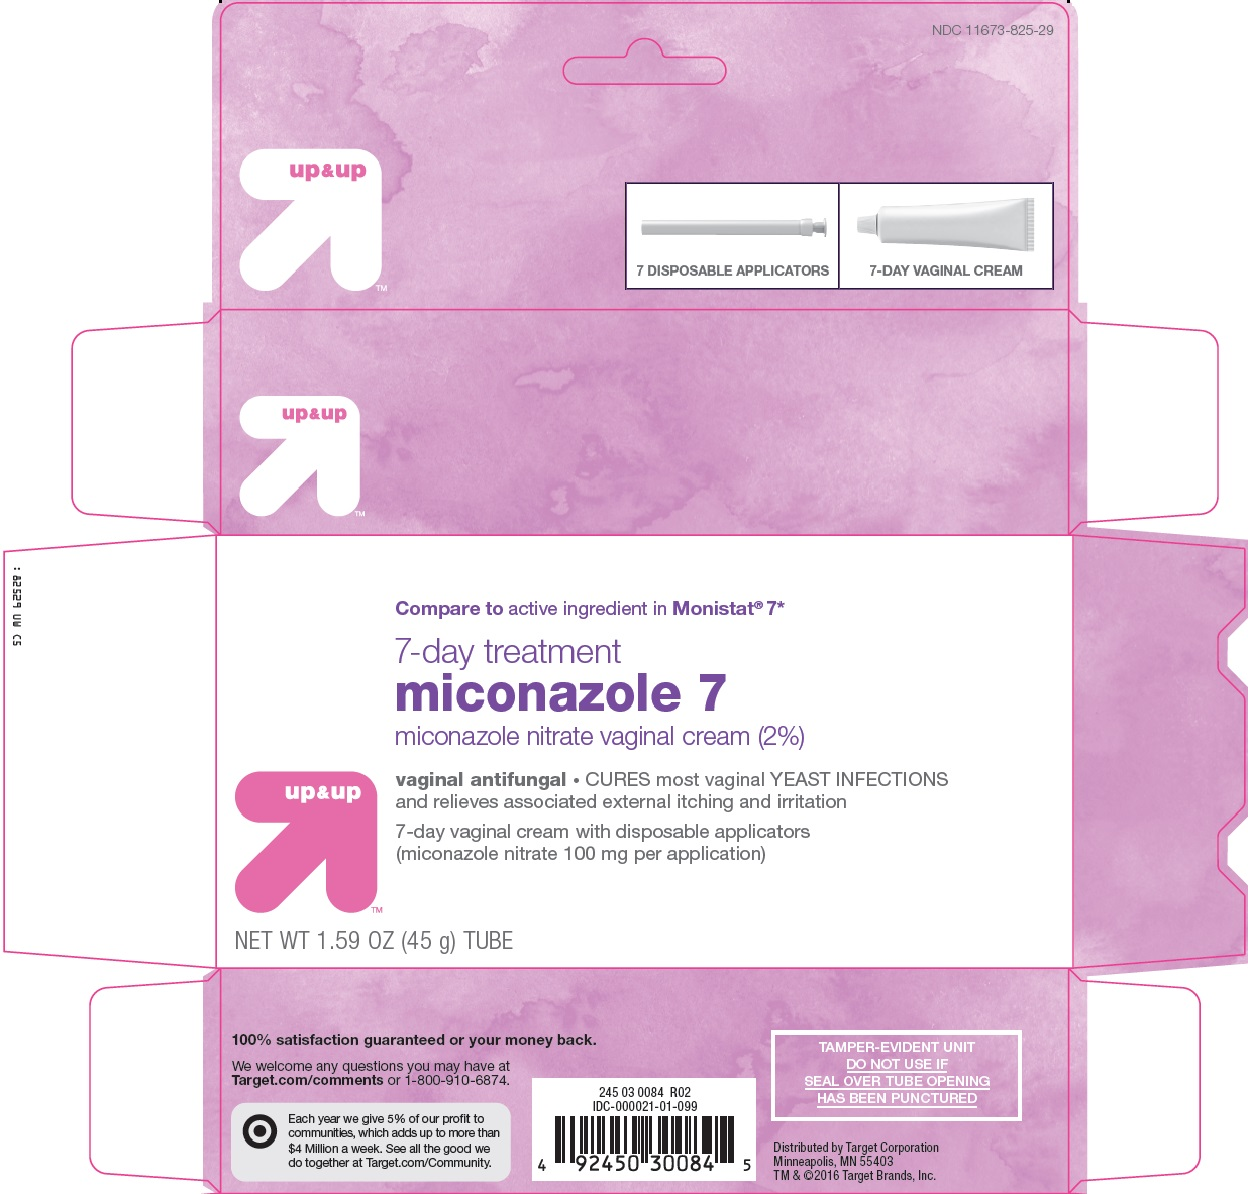 Up & Up Miconazole 7 image 1